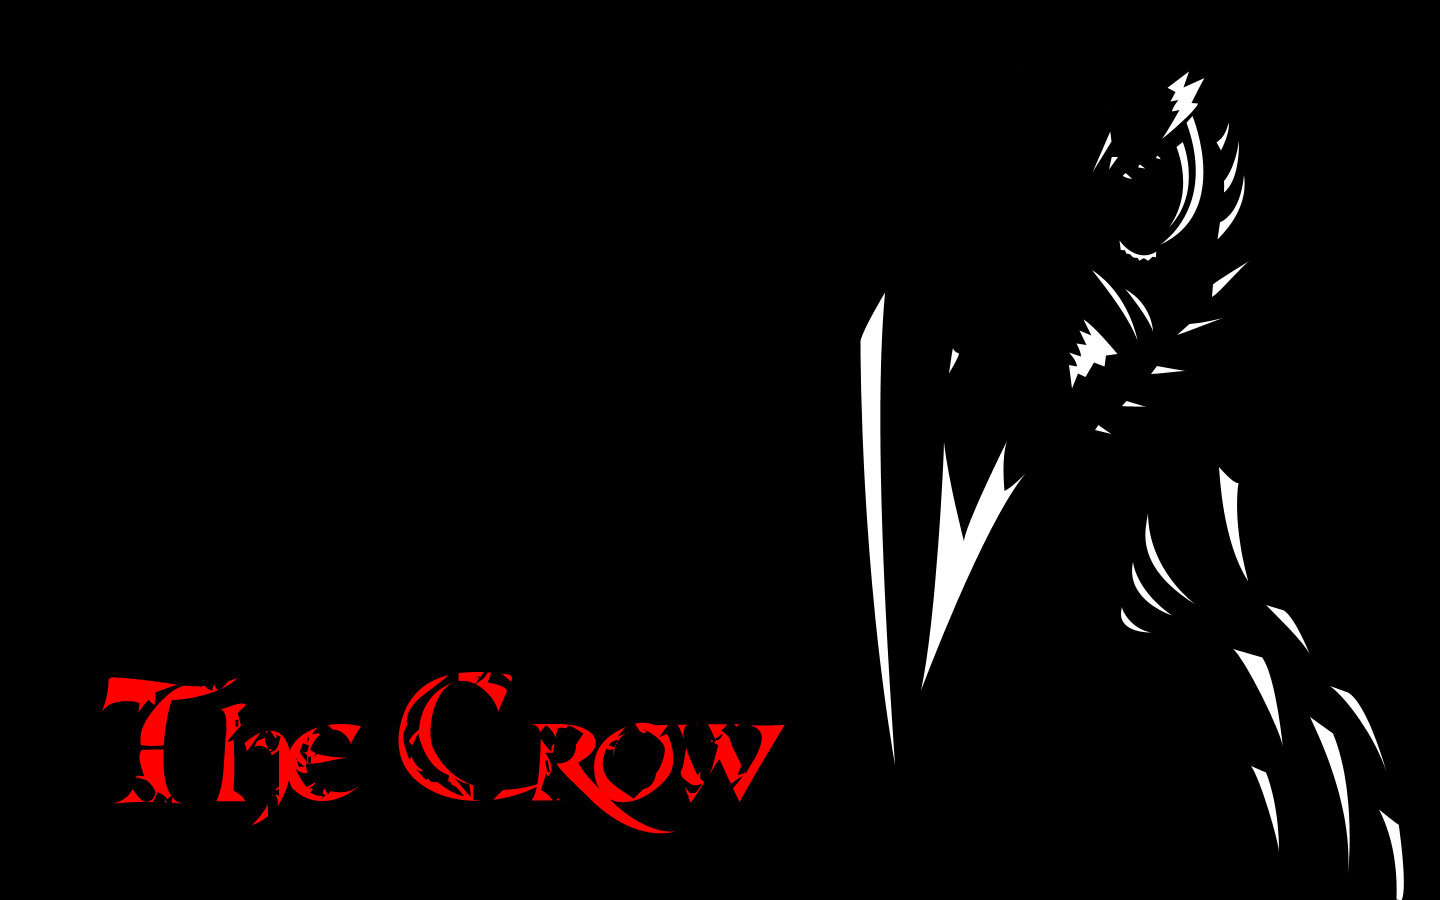 Free Download The Crow Wallpaper By Maskmaker24 1440x900